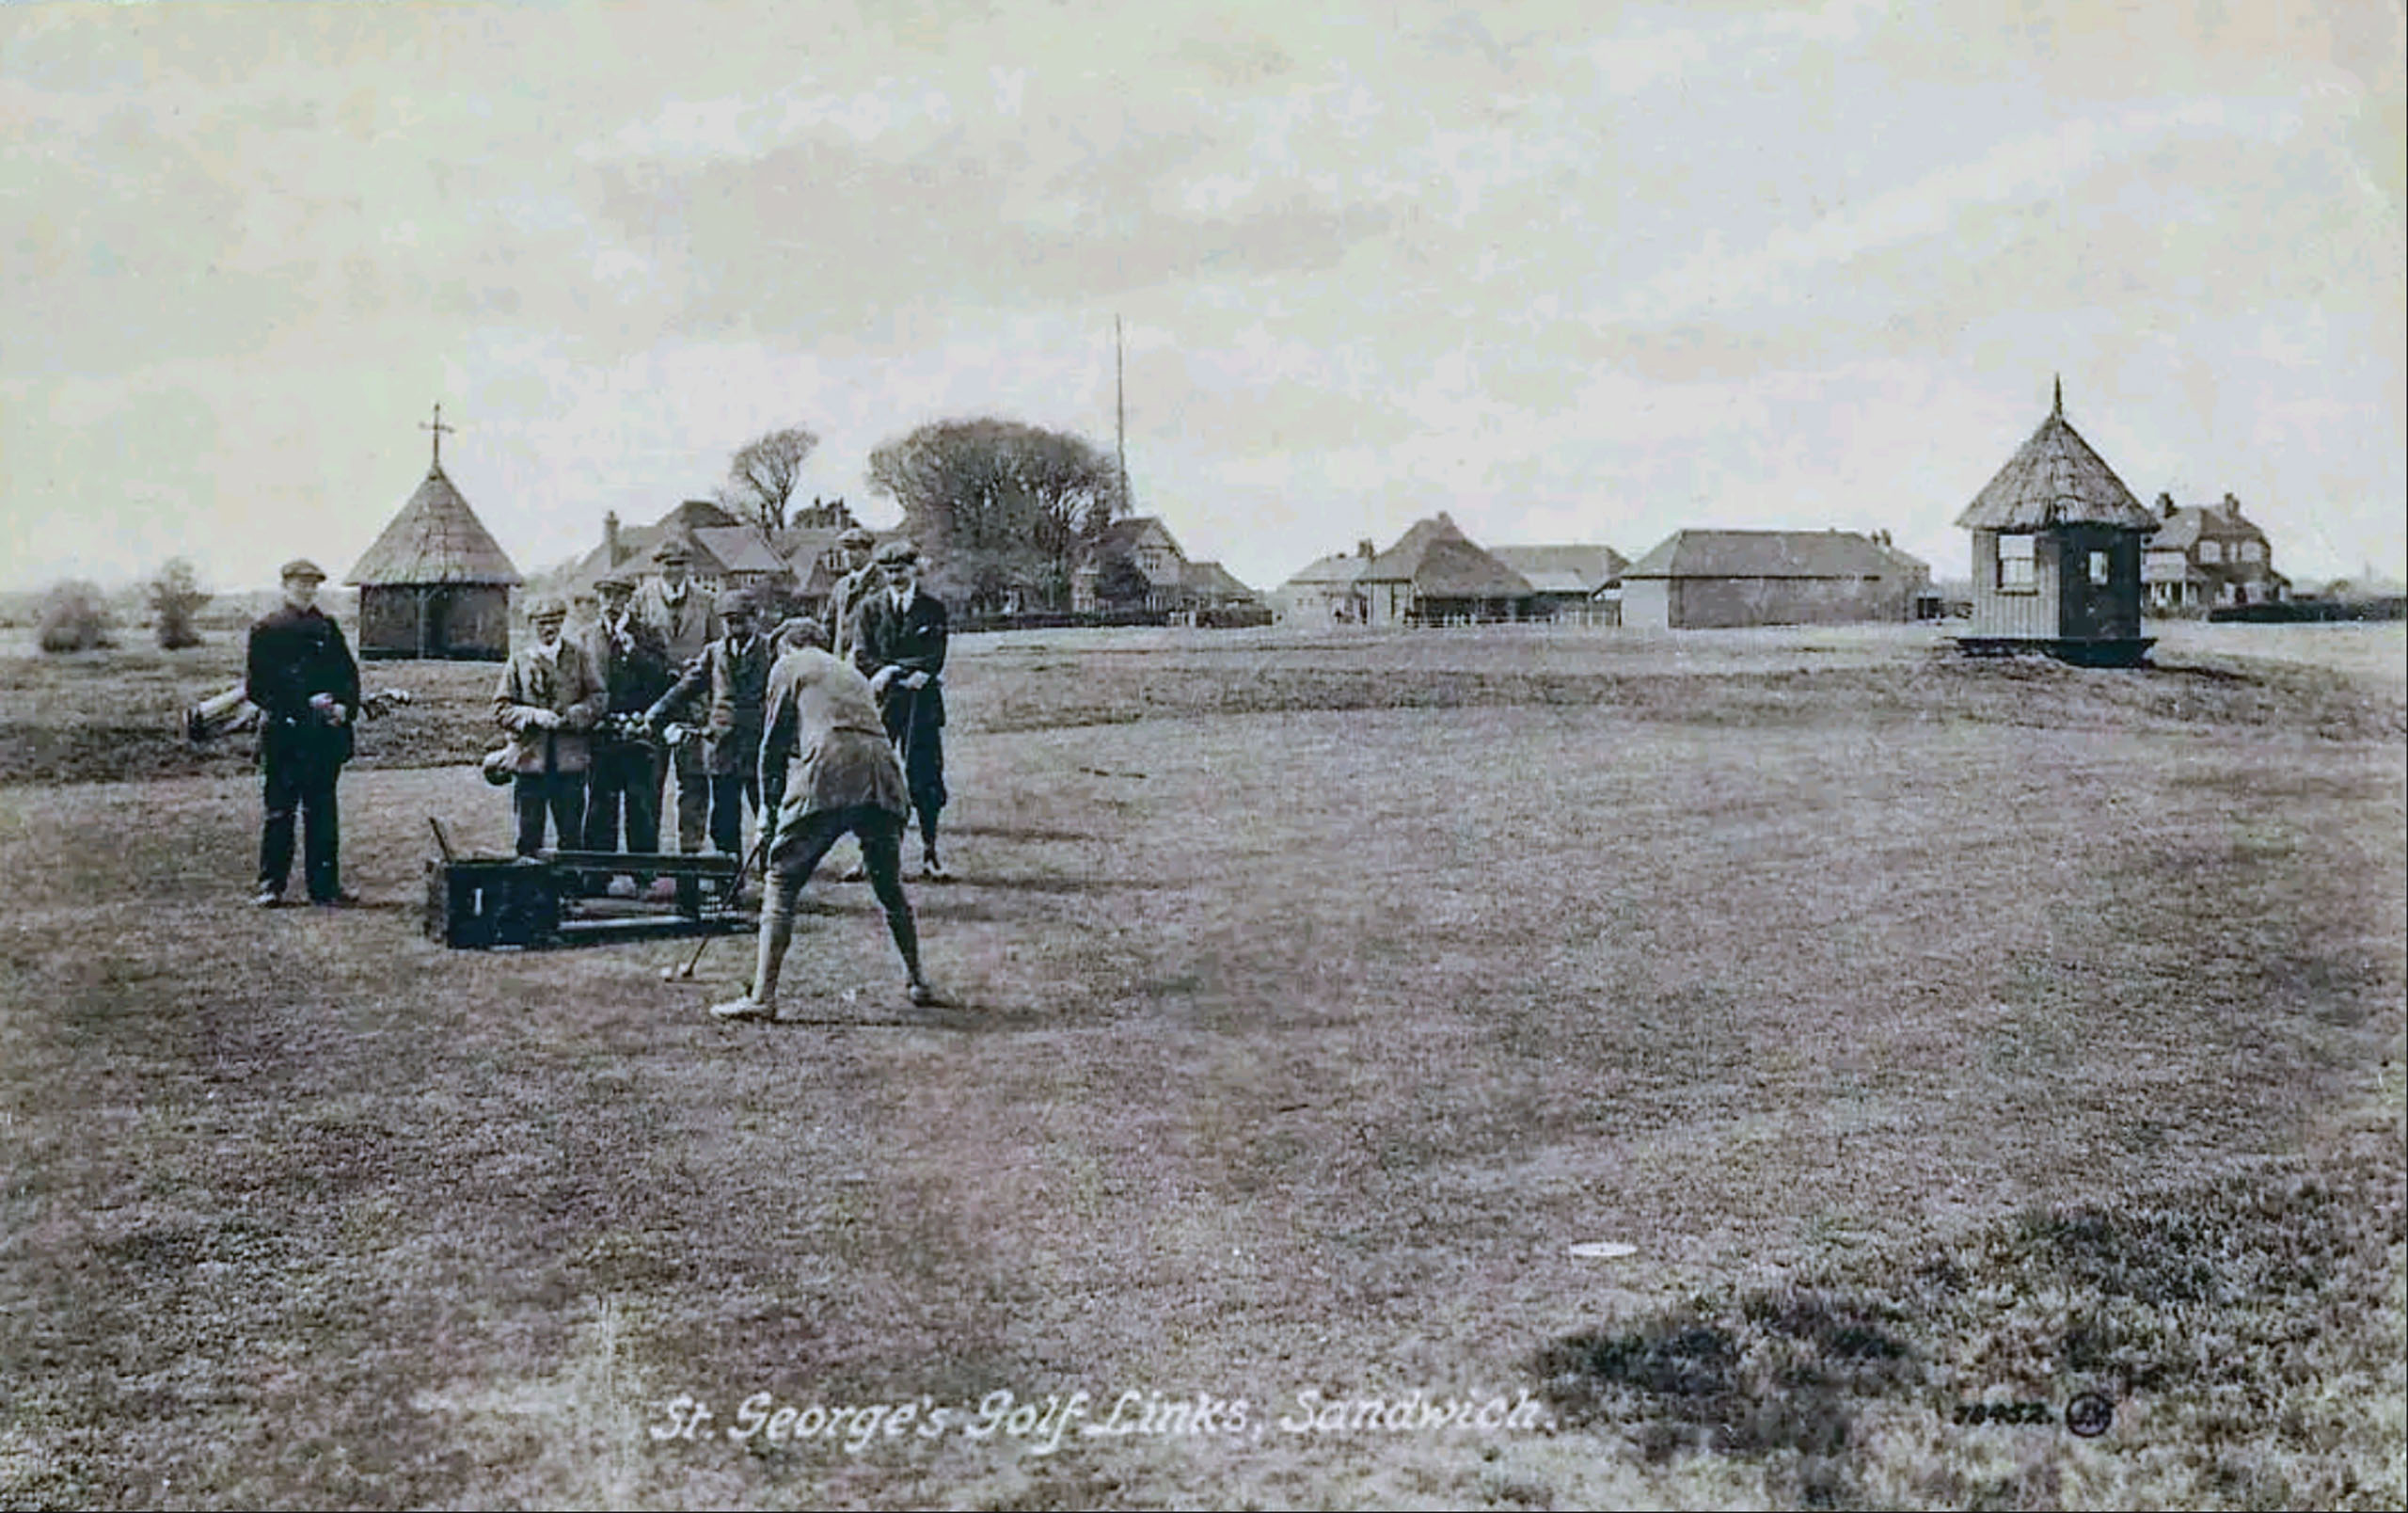 A 1907 postcard showcases players teeing off at the first, with thatched shelters and Royal St. George's original clubhouse in the background.